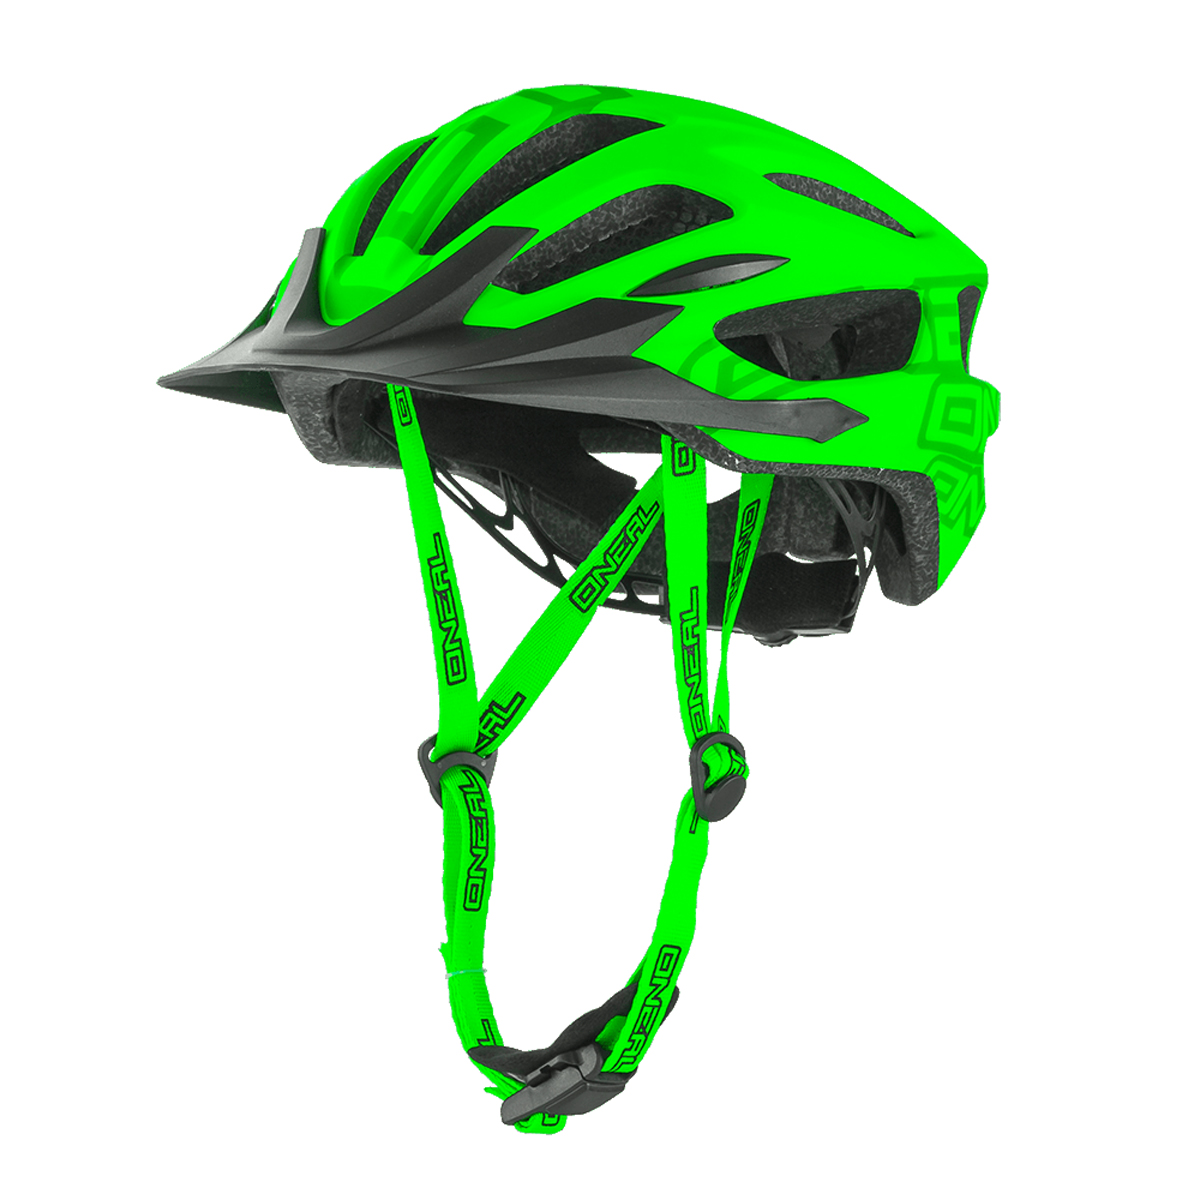 O 'neal  q RL All mountain enduro MTB casco verde 2019 oneal  barato